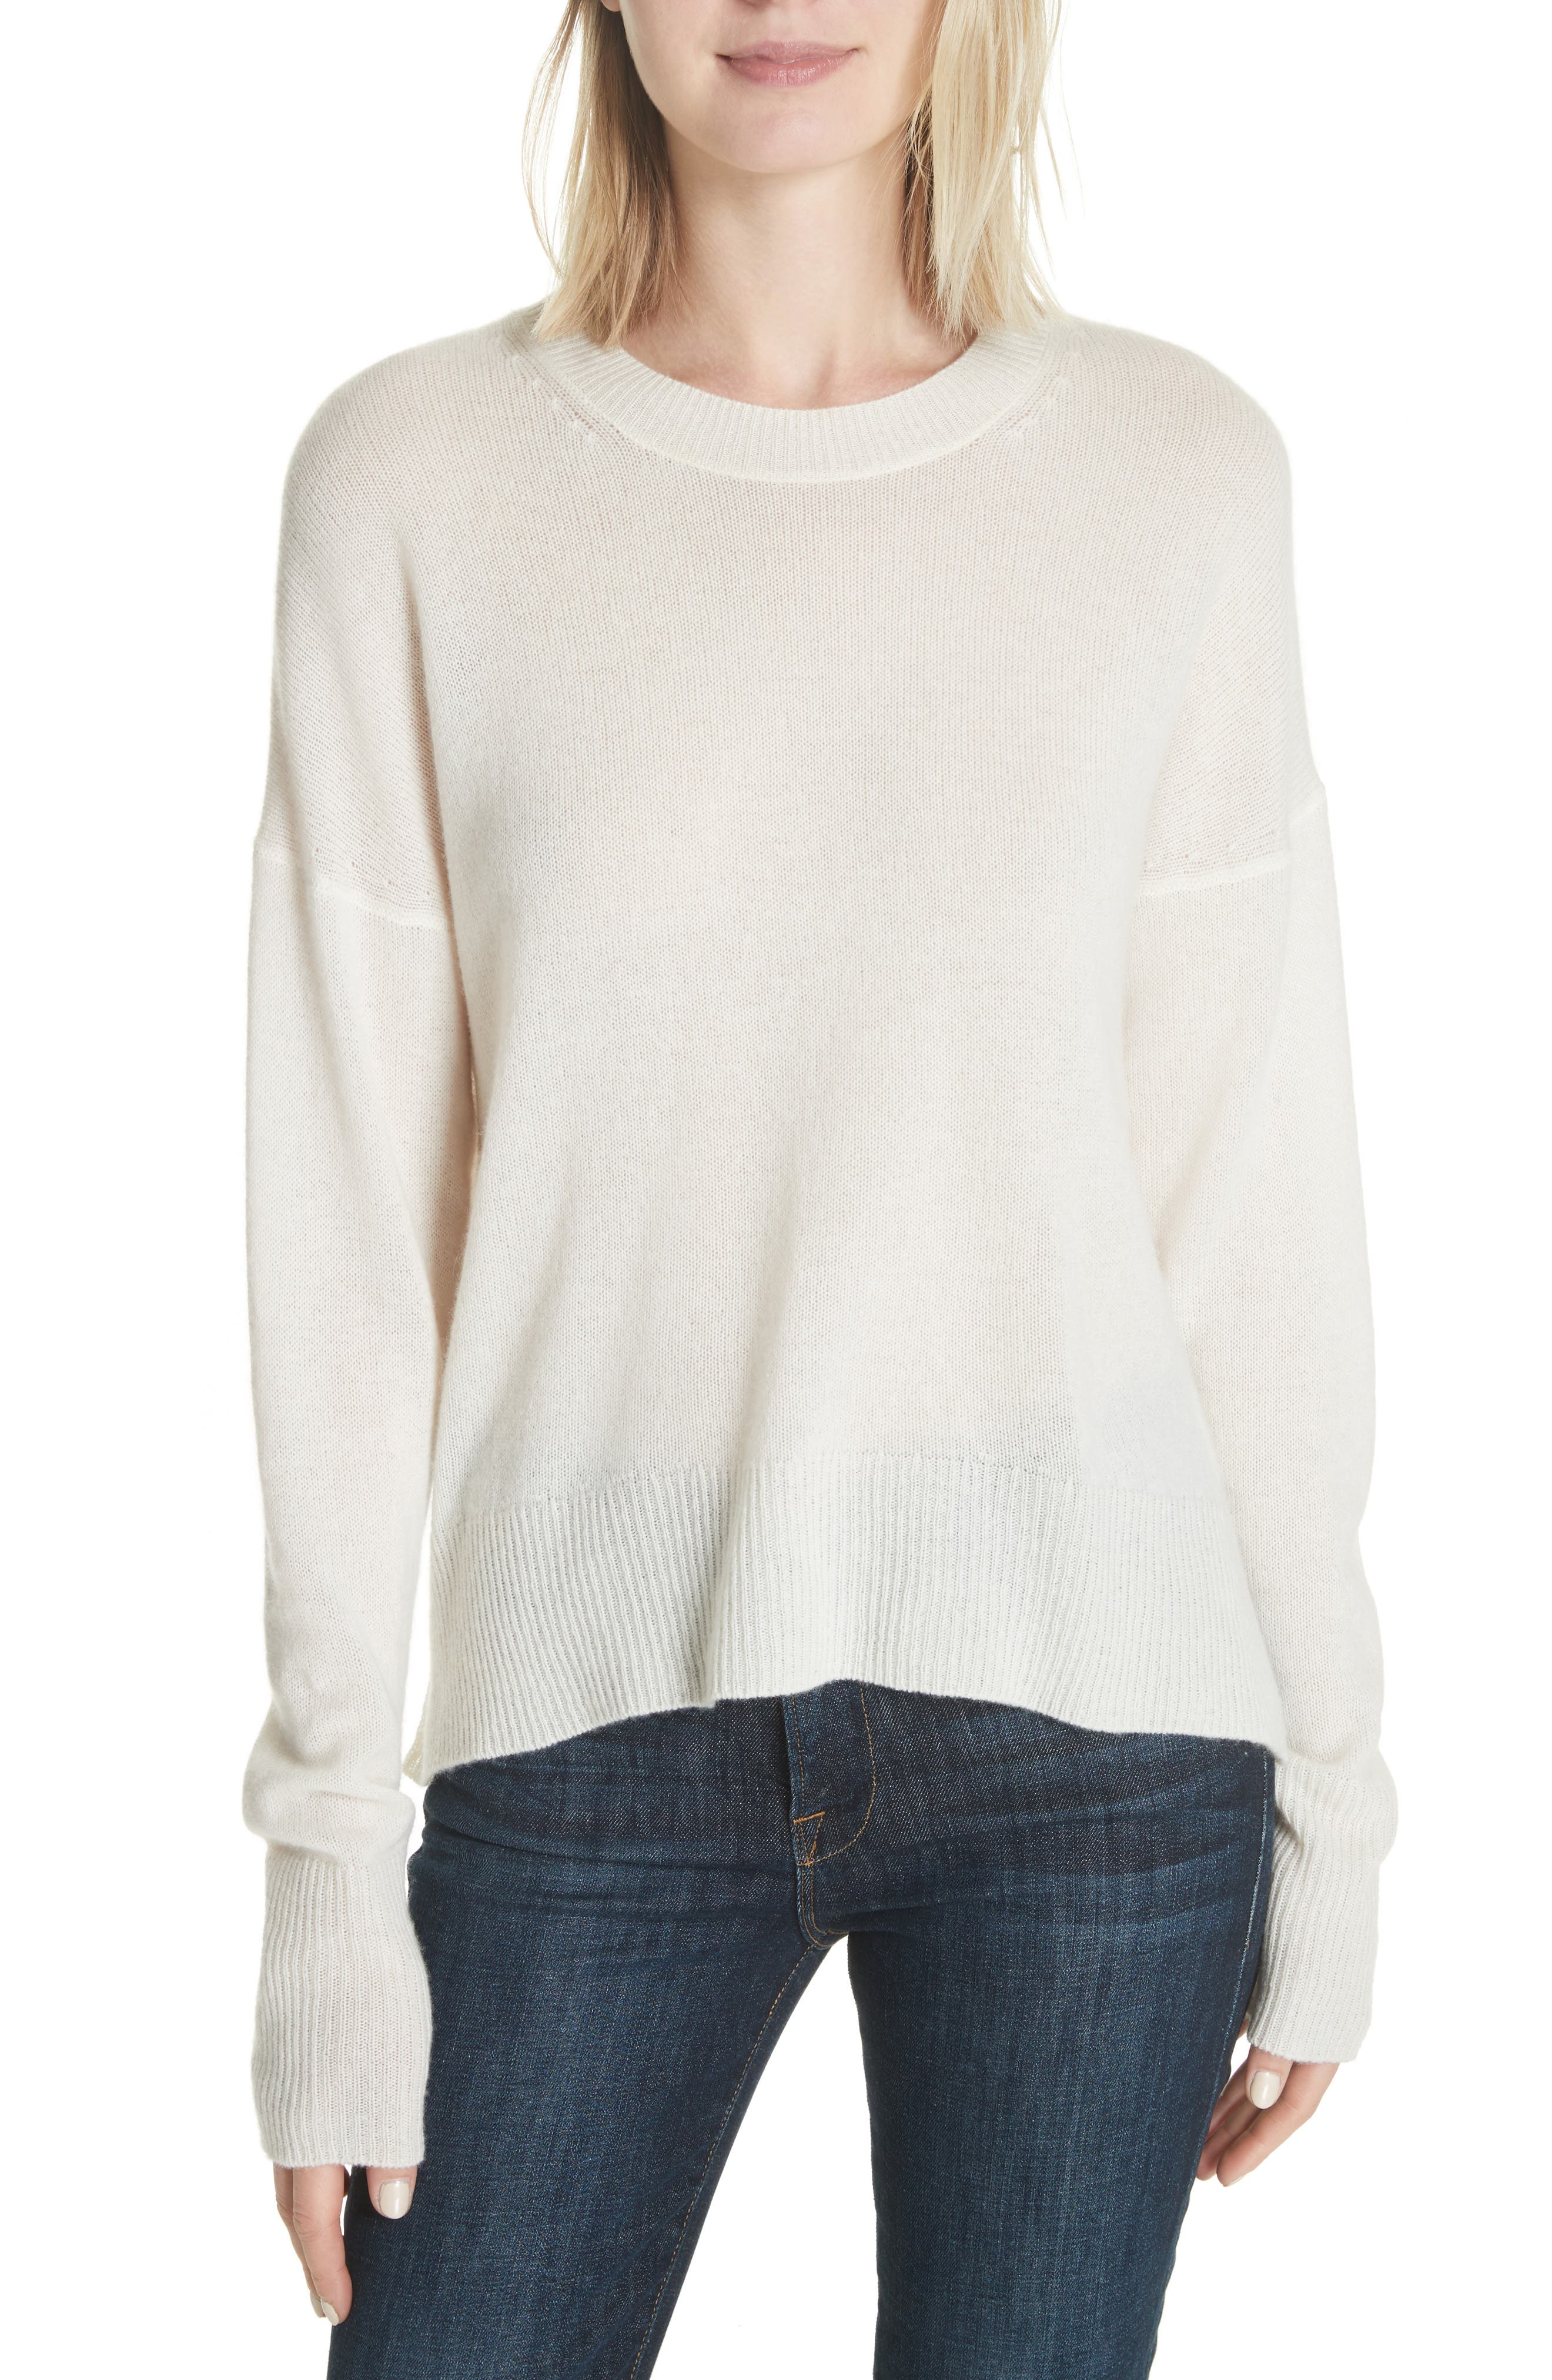 Karenia L Cashmere Sweater,                             Main thumbnail 1, color,                             Ivory